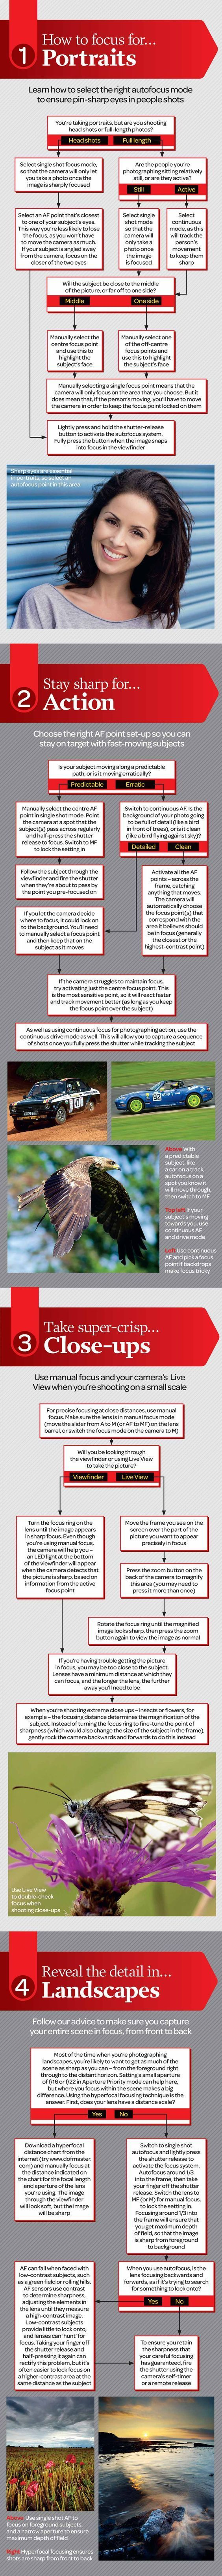 How to focus your camera for any subject or scene: free photography cheat sheet